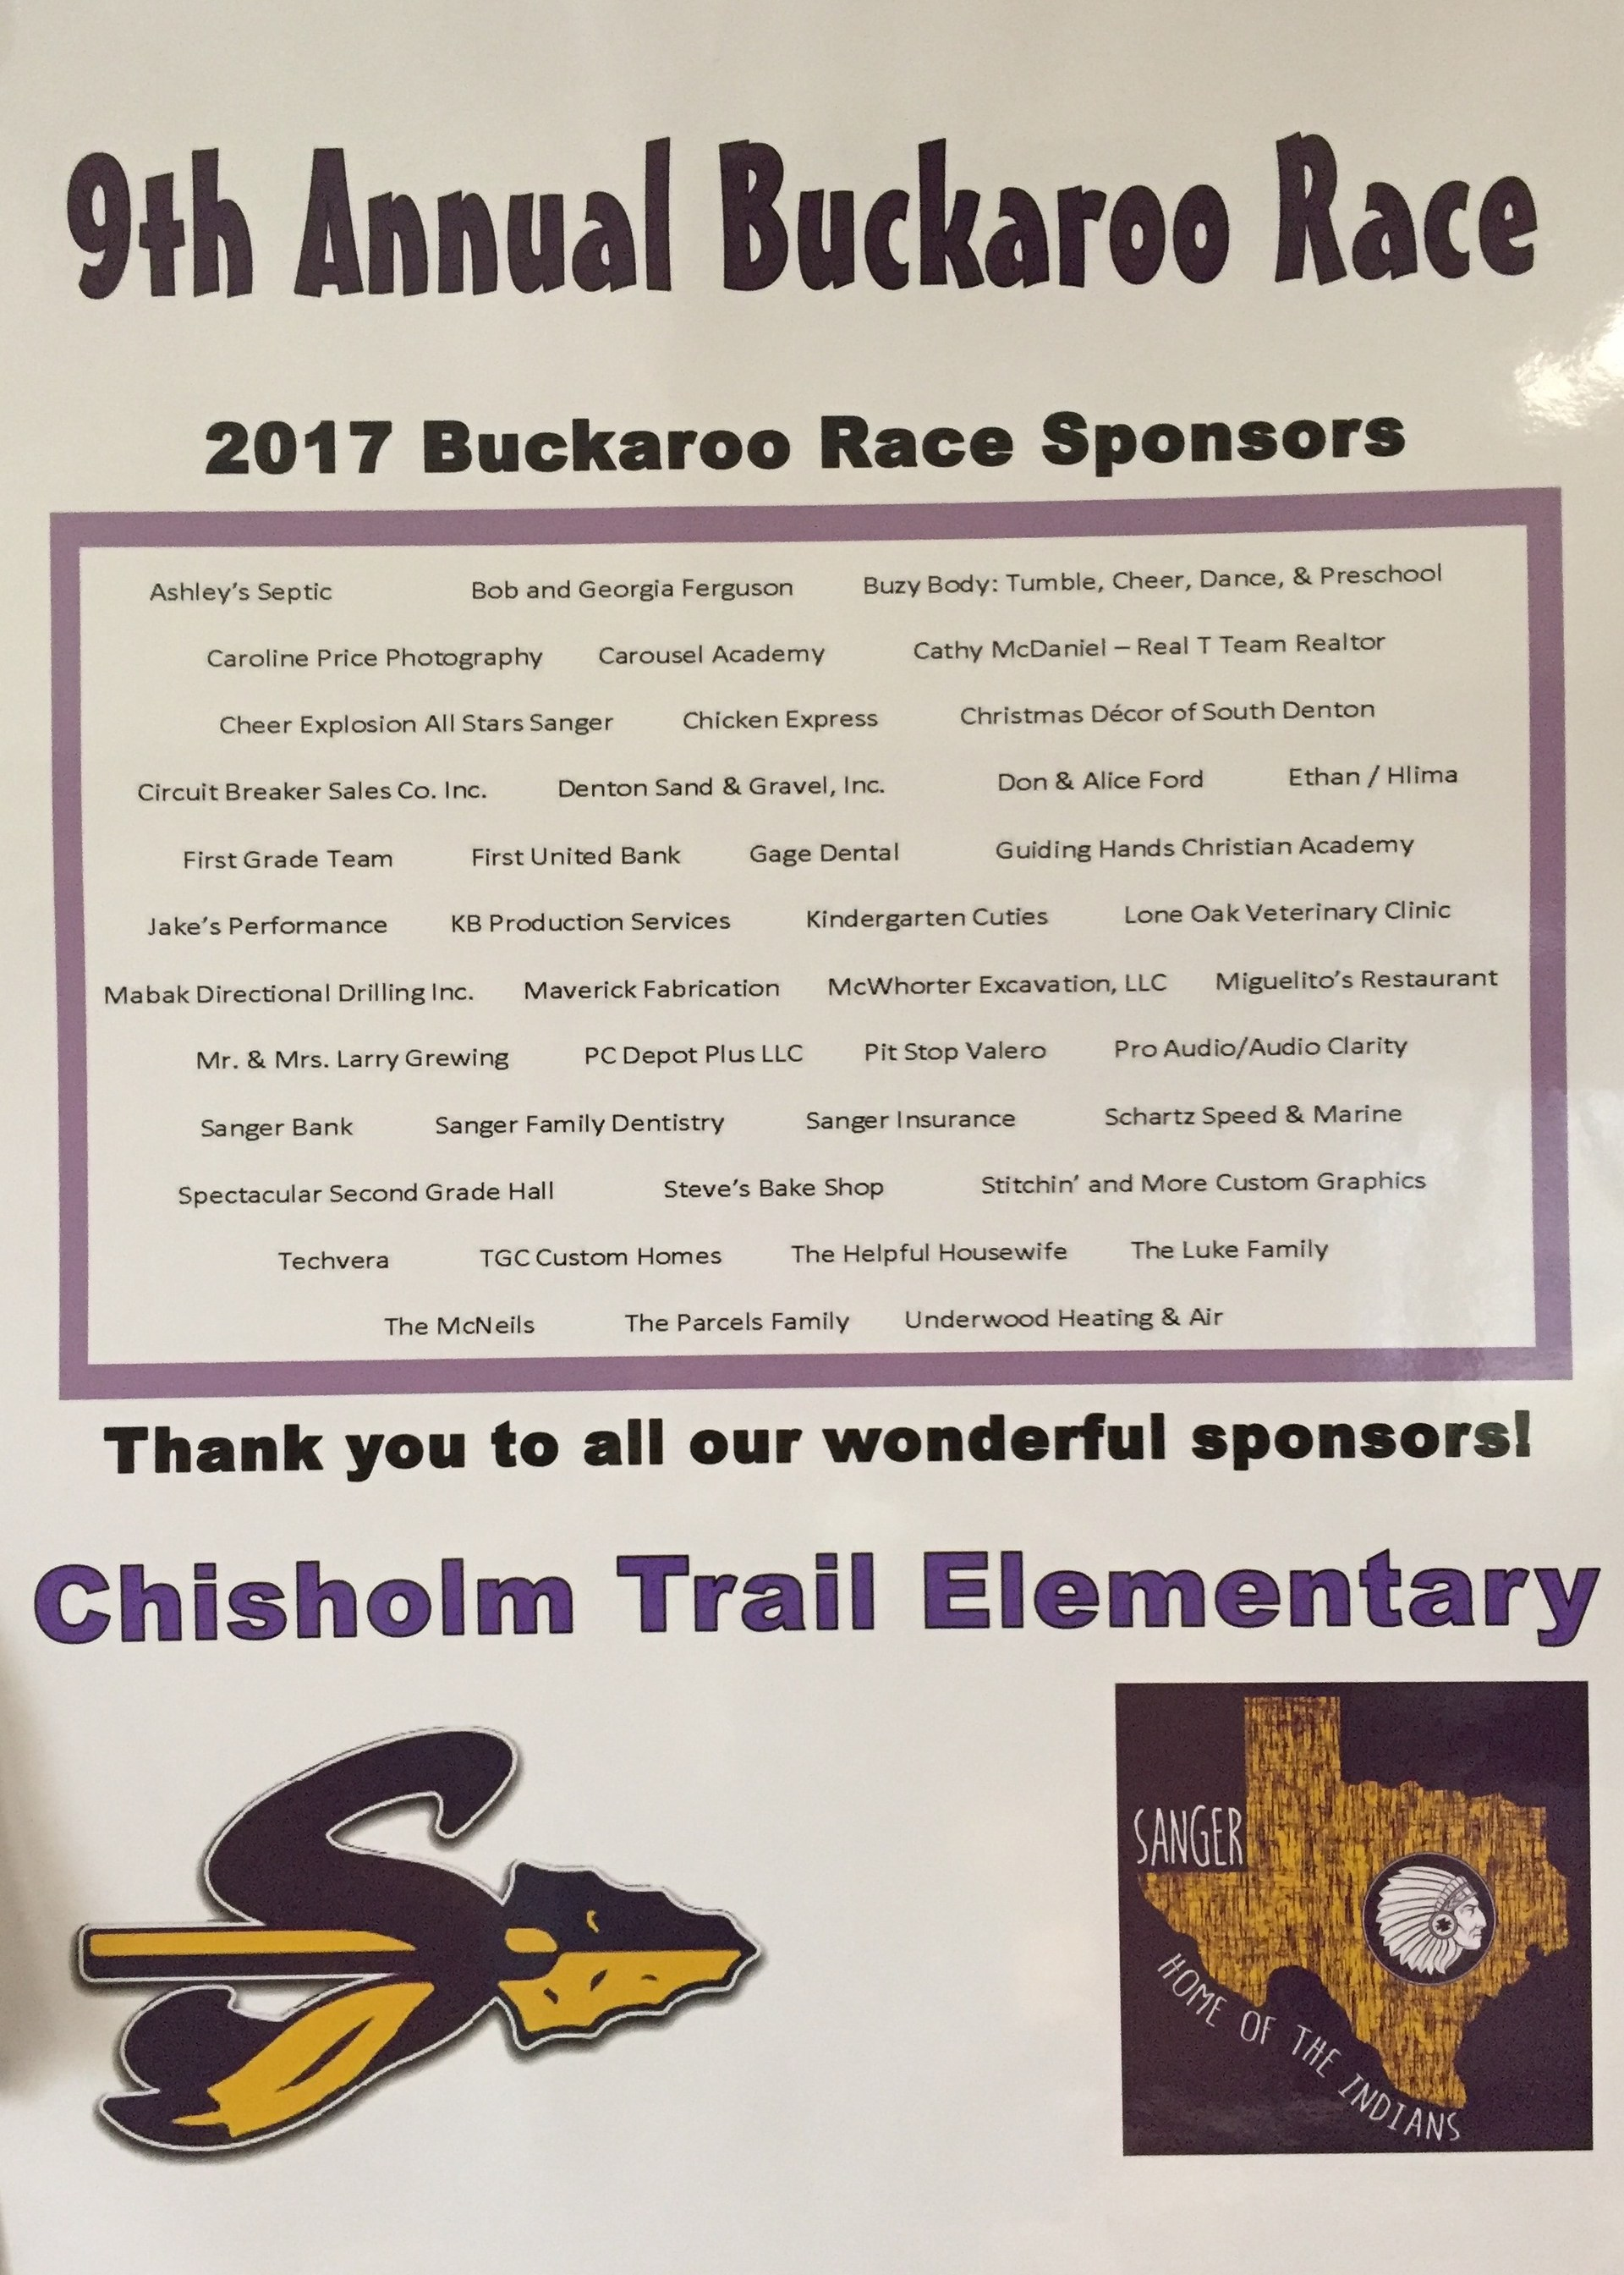 9th Annual Buckaroo Race 2017 Buckaroo Race Sponsors - Thank you to all our Wonderful sponsors! Chisholm Trail Elementary. Also a picture of our S Loga and Texas Sanger Home of the Indians.